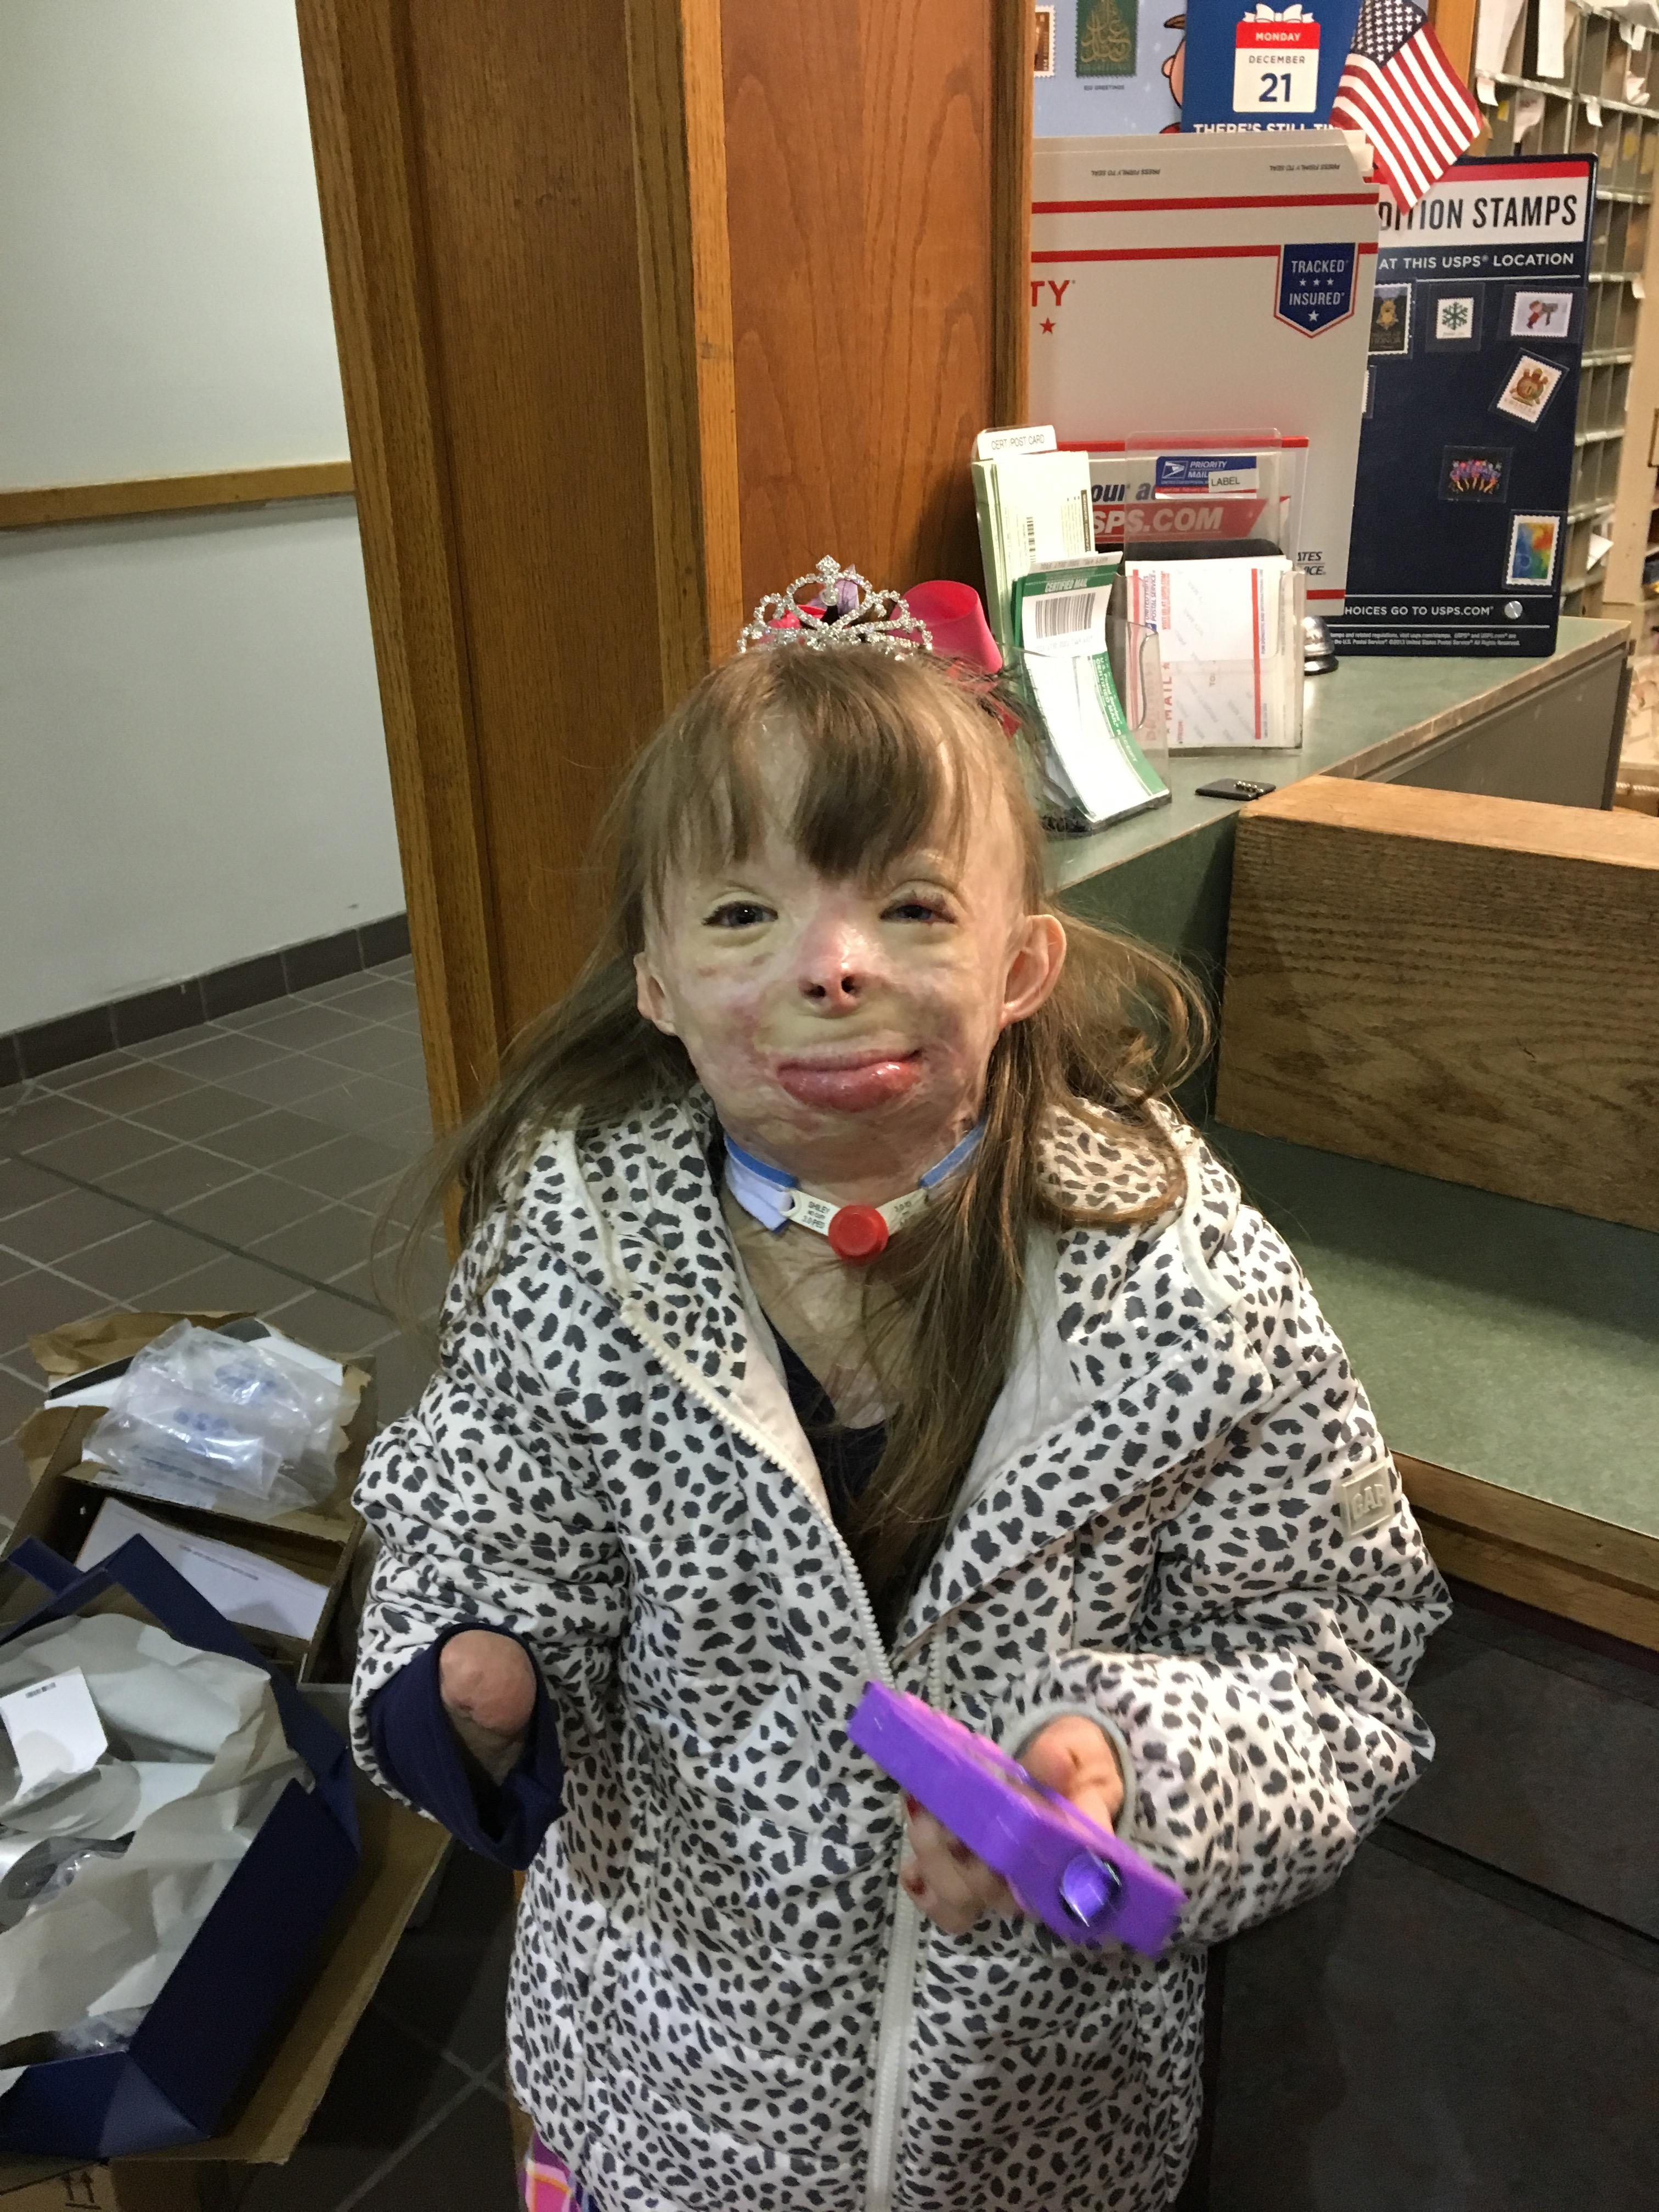 christmas comes early to 8 year old disfigured by fire washington times - Christmas Gifts For 8 Yr Old Girl